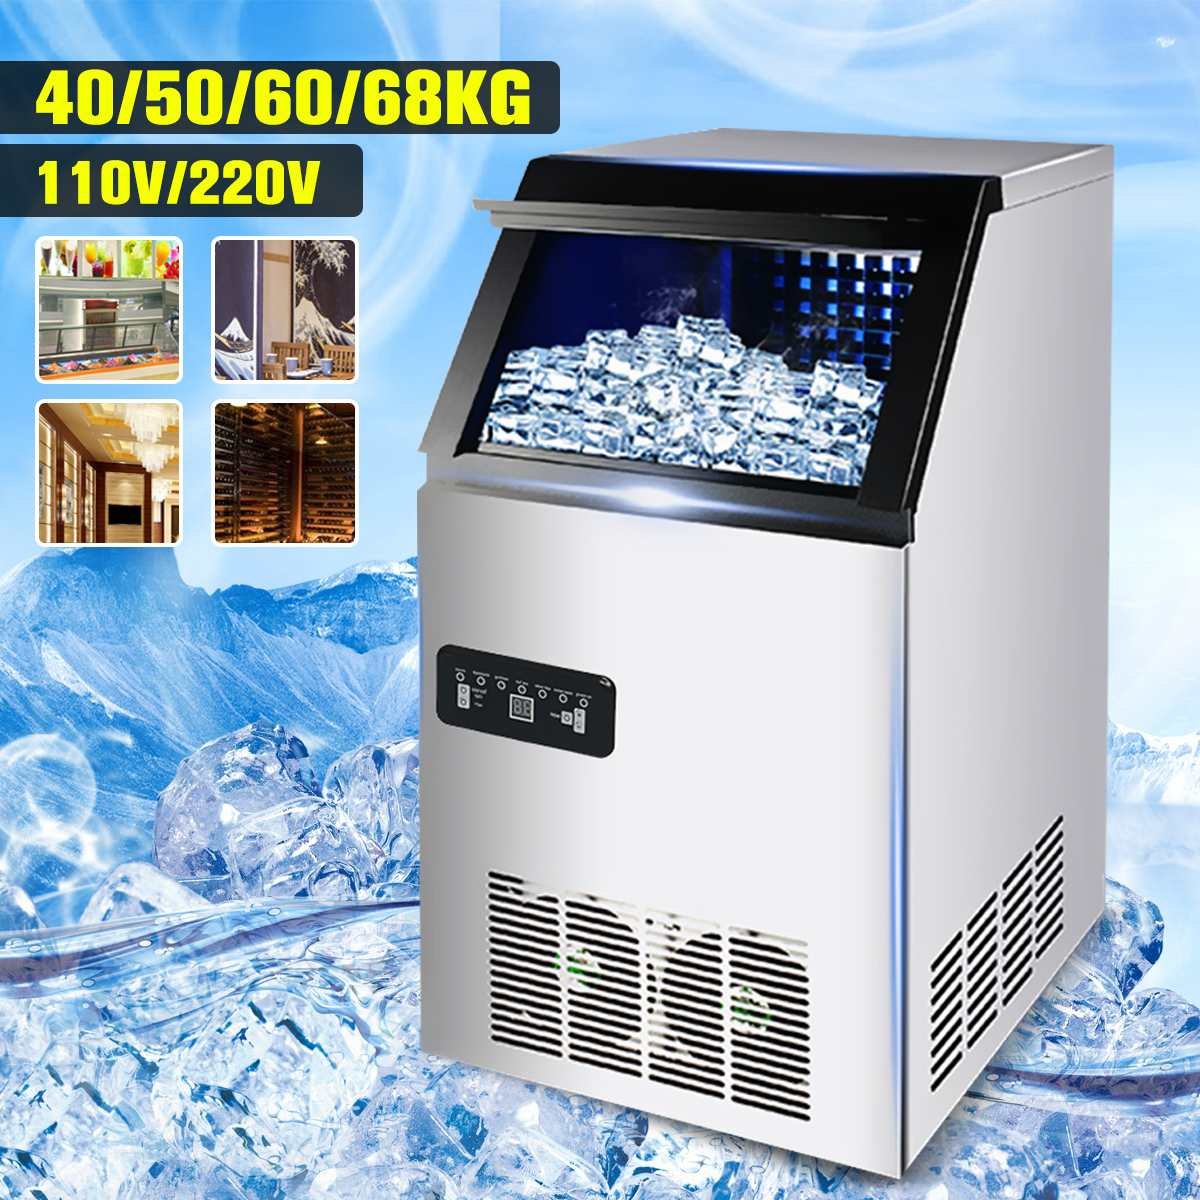 50kg /60kg/68kg 110V/220V Electric Automatic Cube Ice Maker Bar Coffee Shop Commercial Or Home Use Ice Making Machine Ice Maker